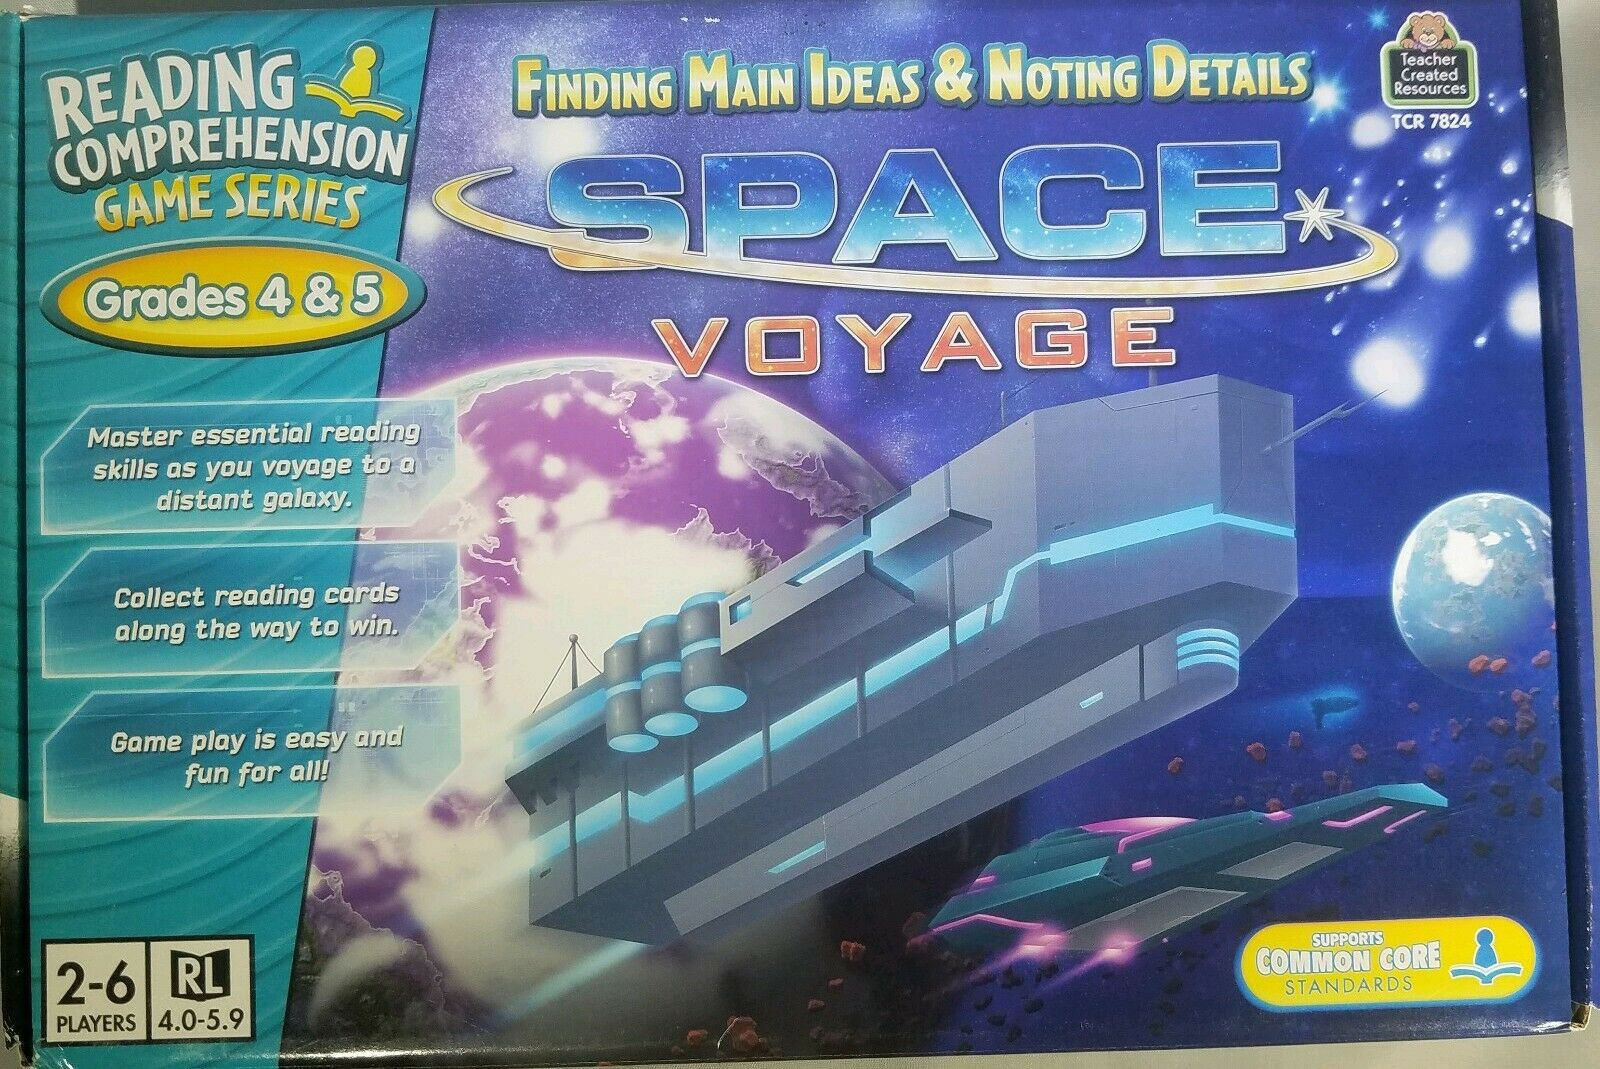 - TCR 7824 Space Voyage Reading Comprehension Teacher Game Grades 4